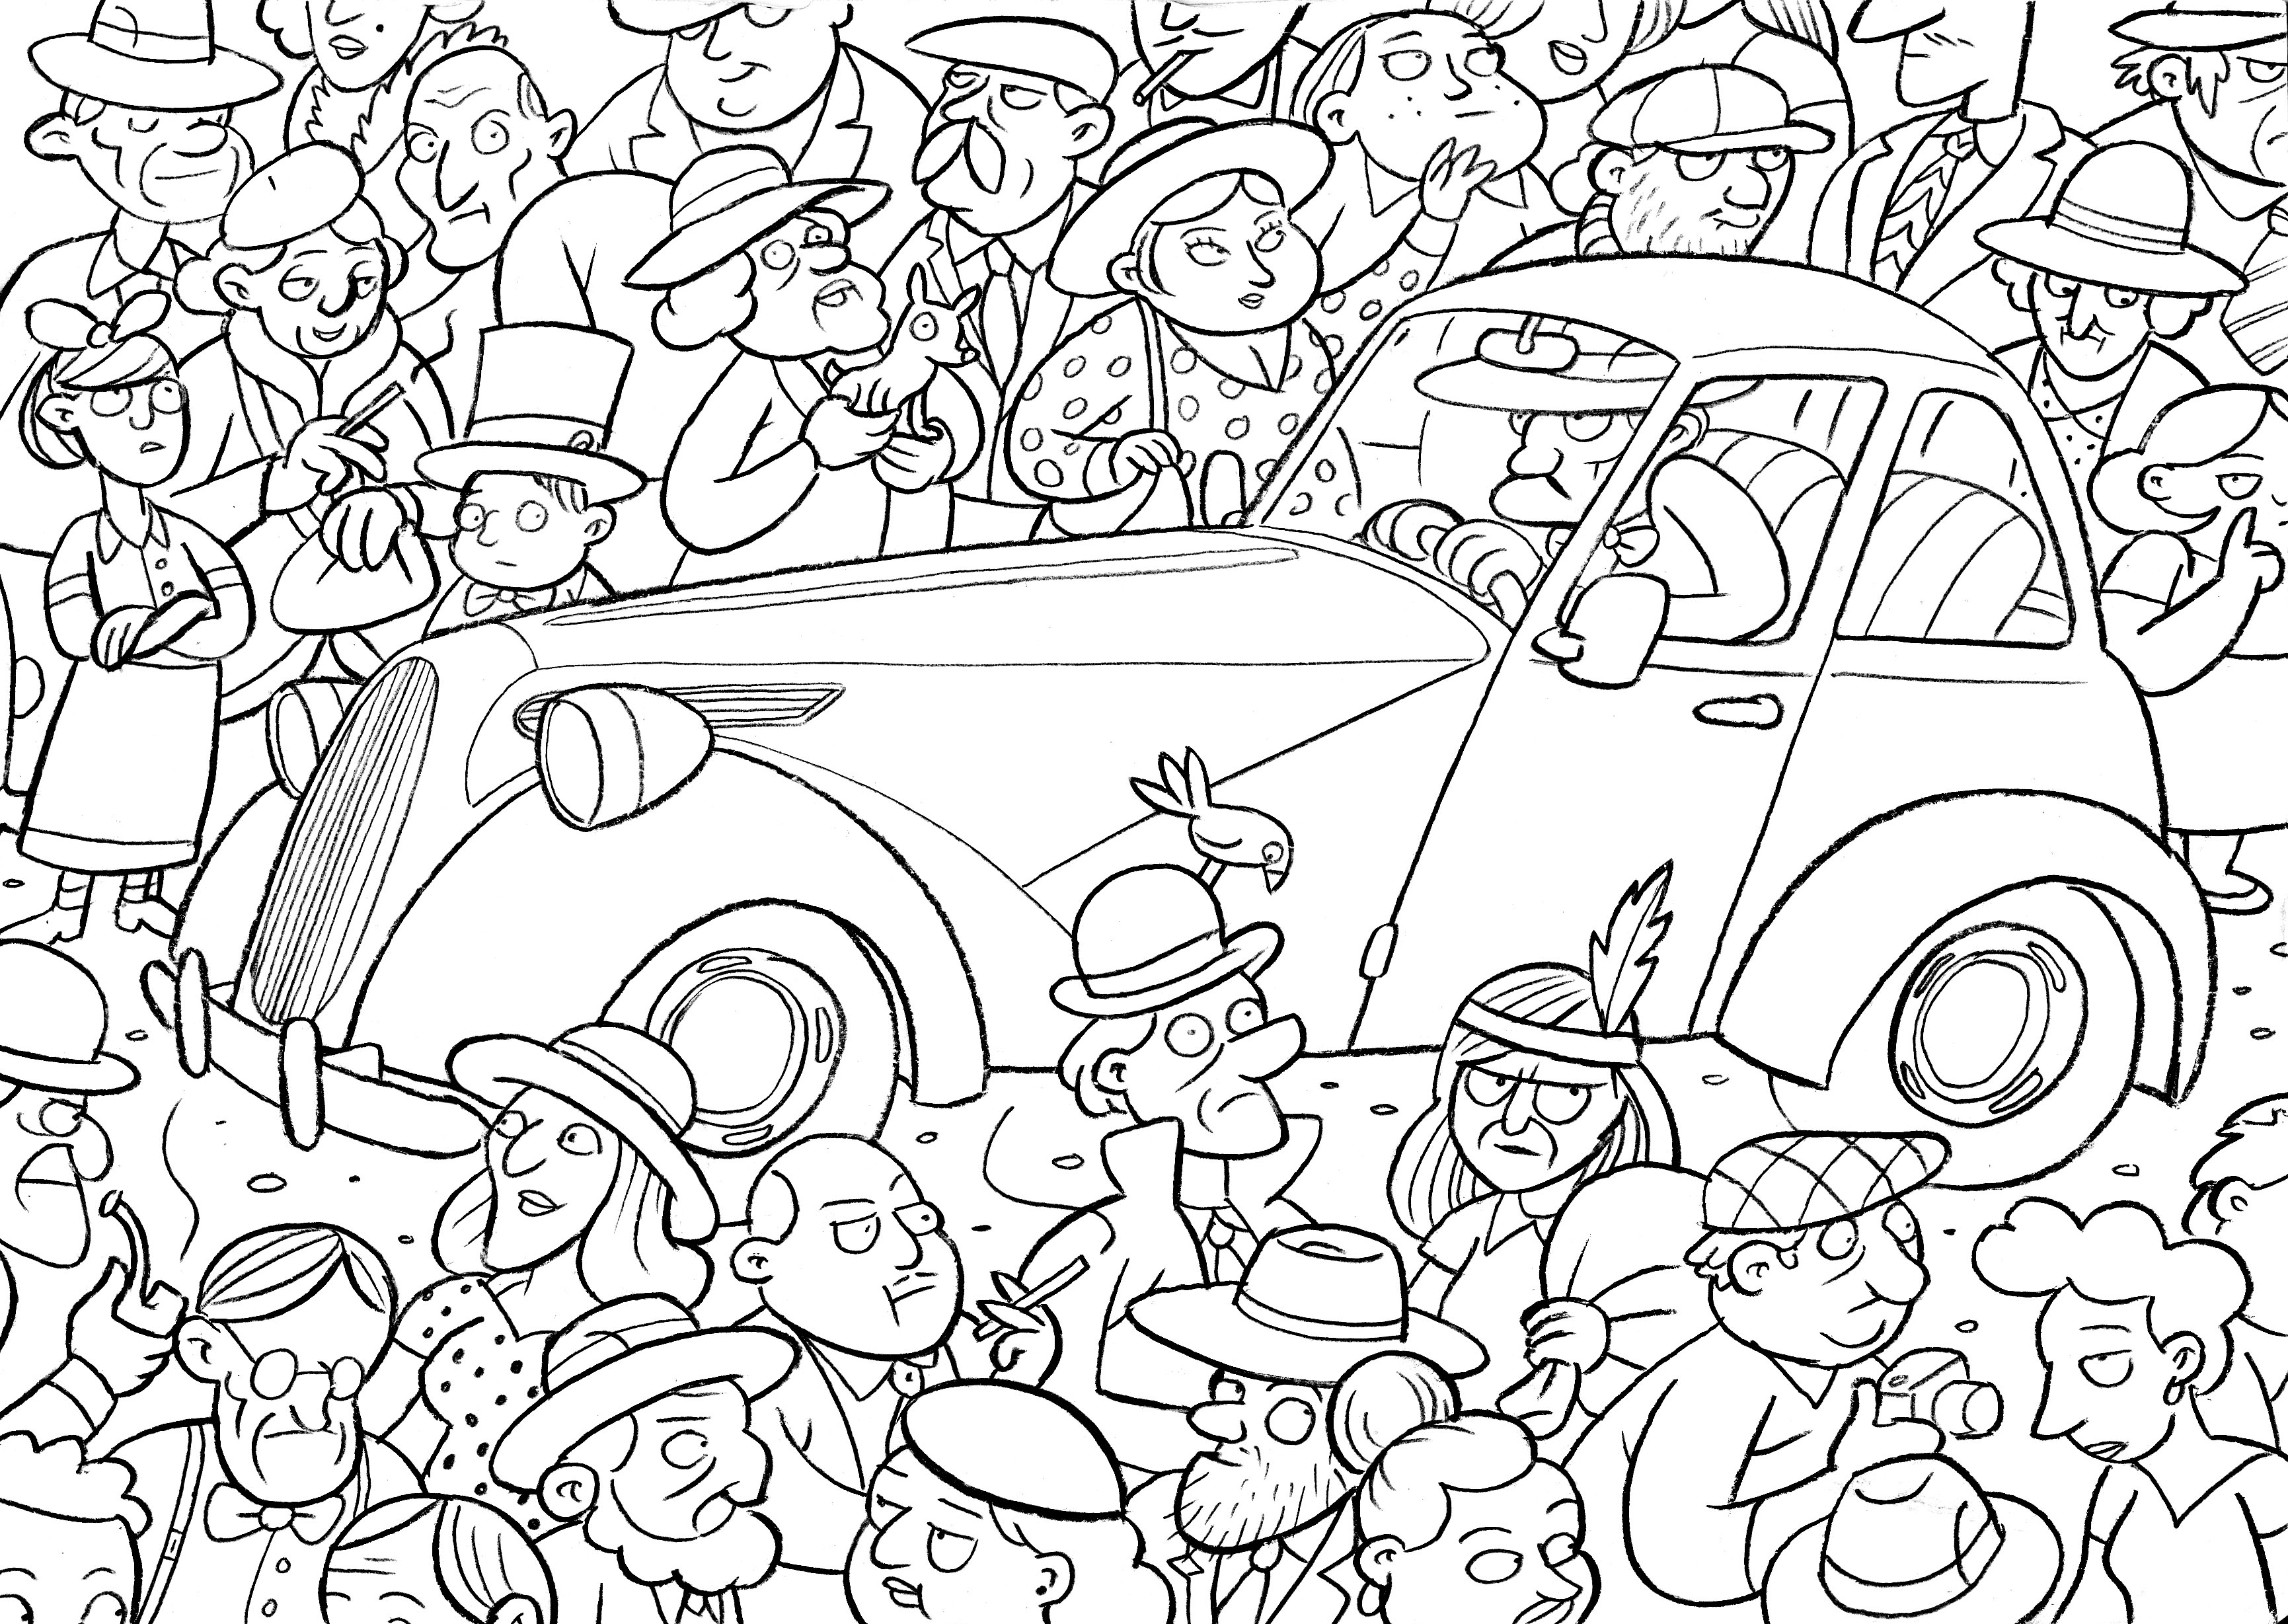 It Crowd coloring #1, Download drawings